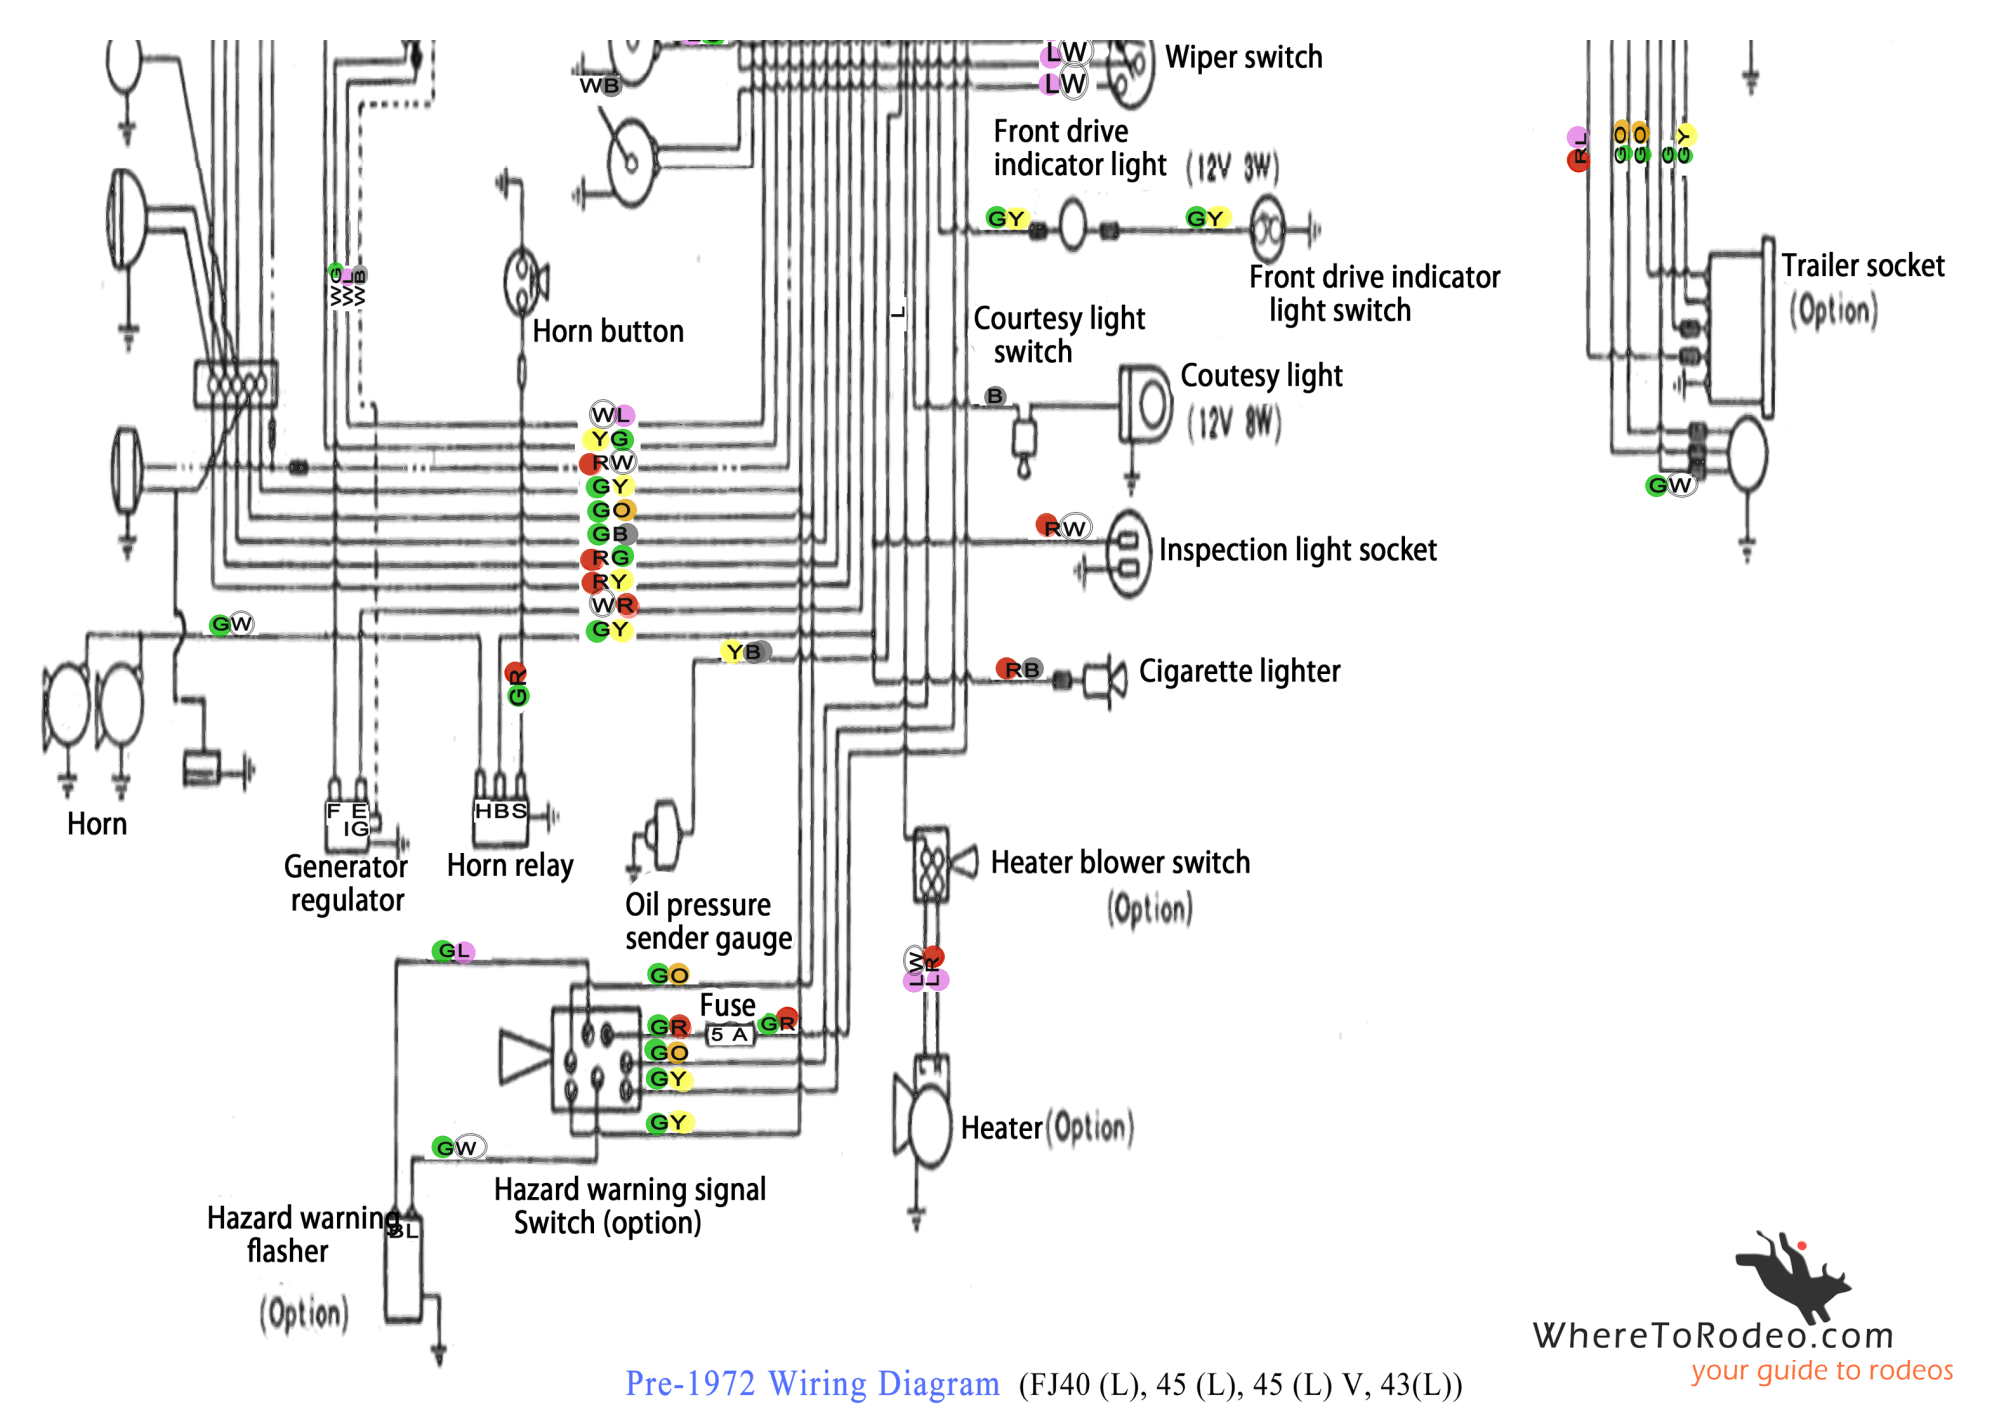 hight resolution of coolerman u0027s electrical schematic and fsm file retrievalpre1972 fj40 wiring diagram2 png